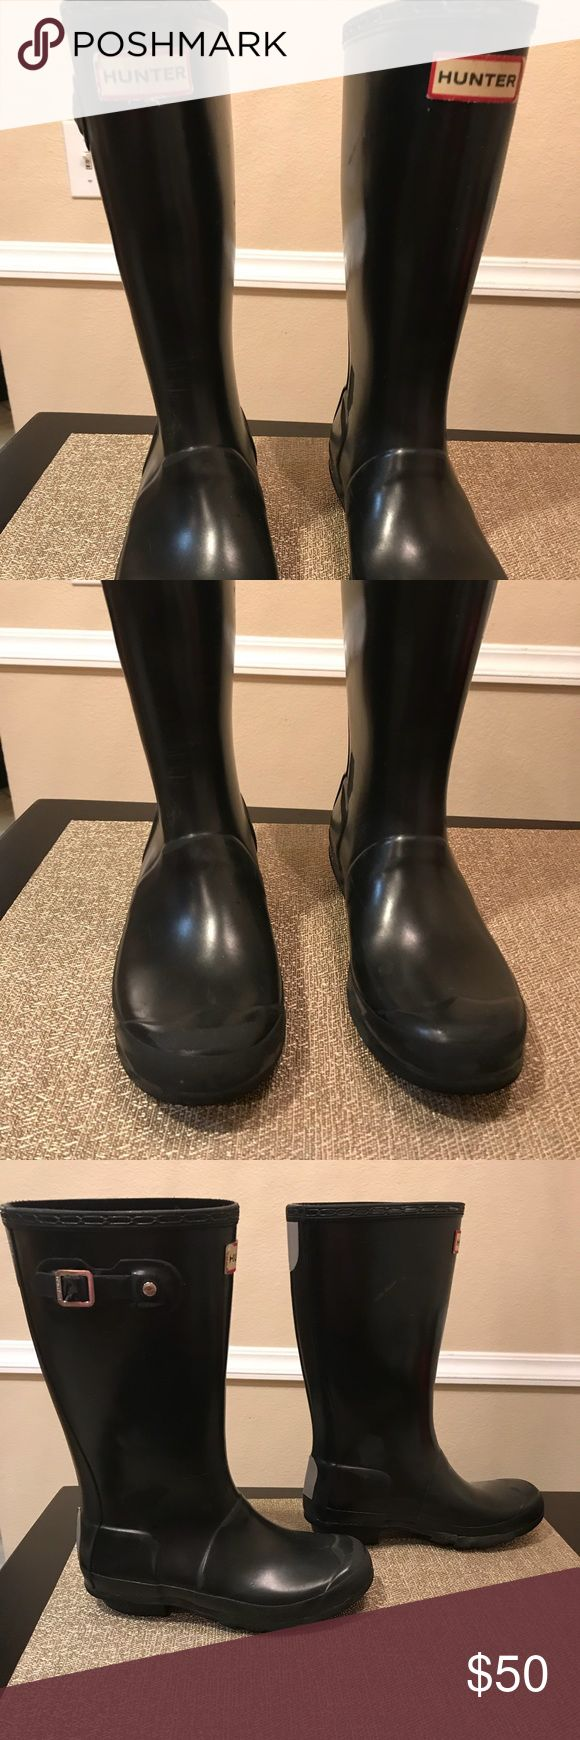 Girls Hunter Boots In Good condition. Signs of wear. Hunter Boots Shoes Rain & Snow Boots